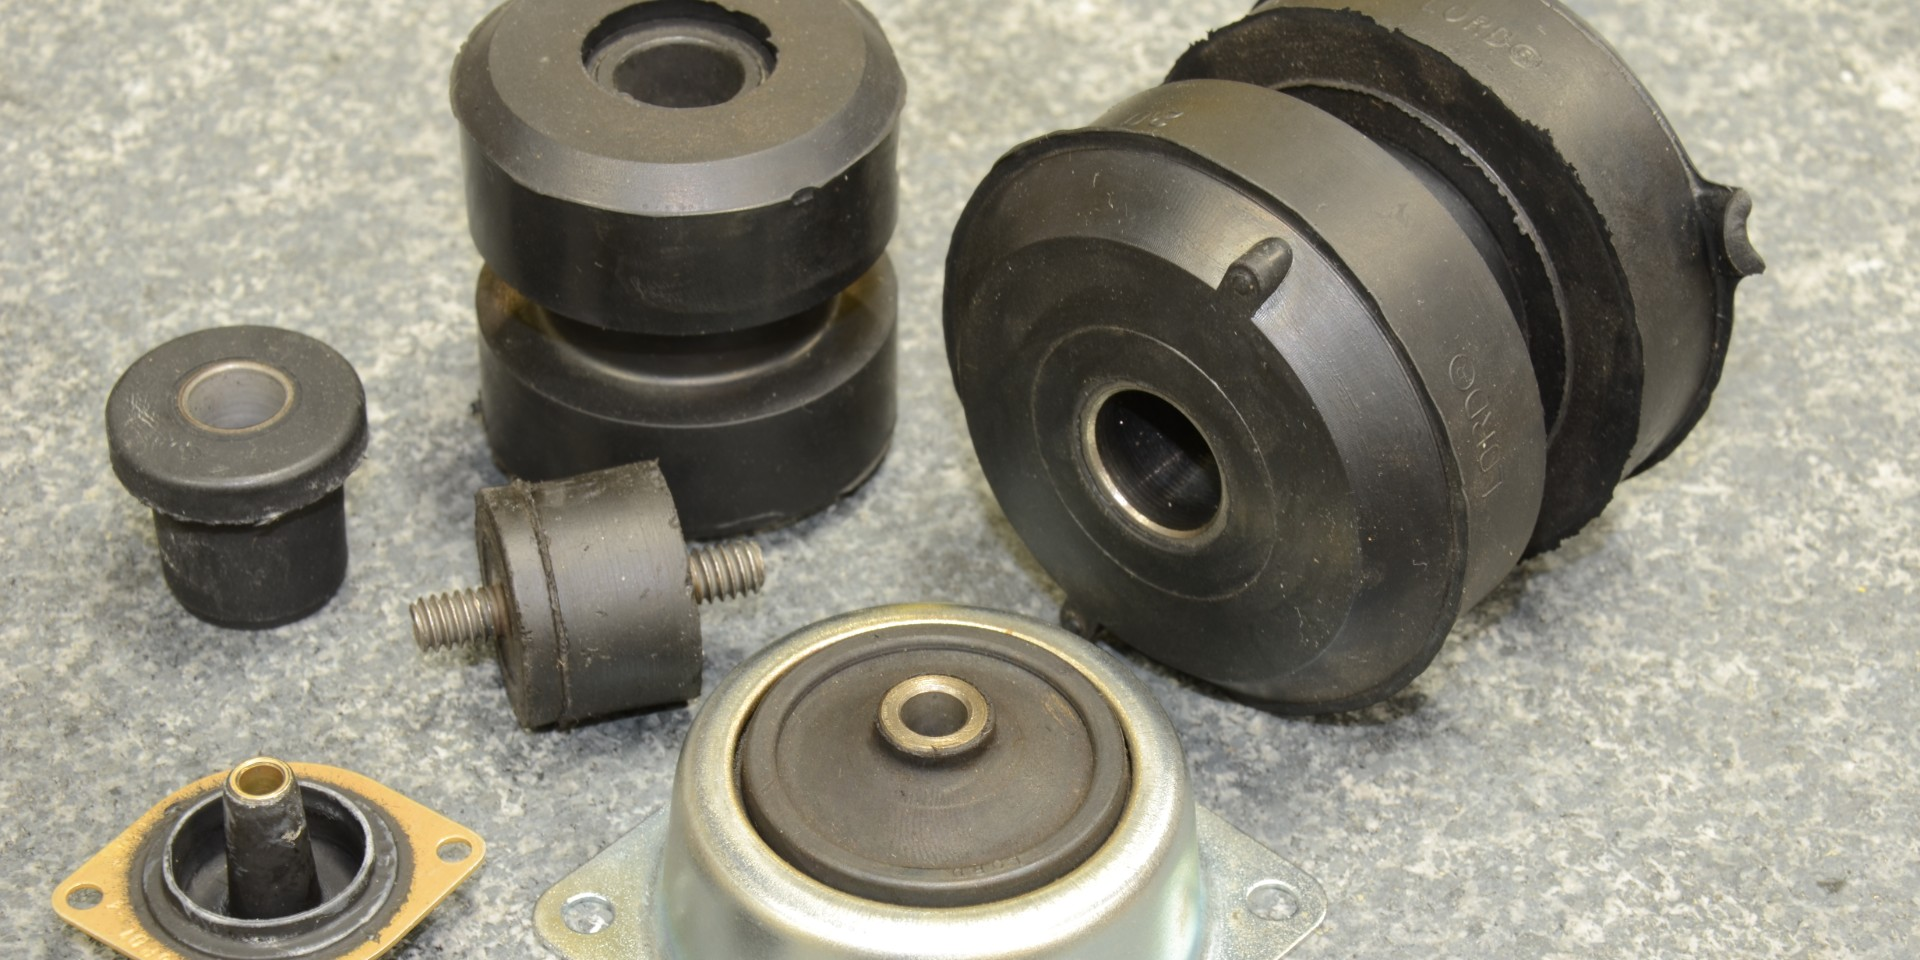 Engine Vibration Analysis Reduces Development Cost and Time